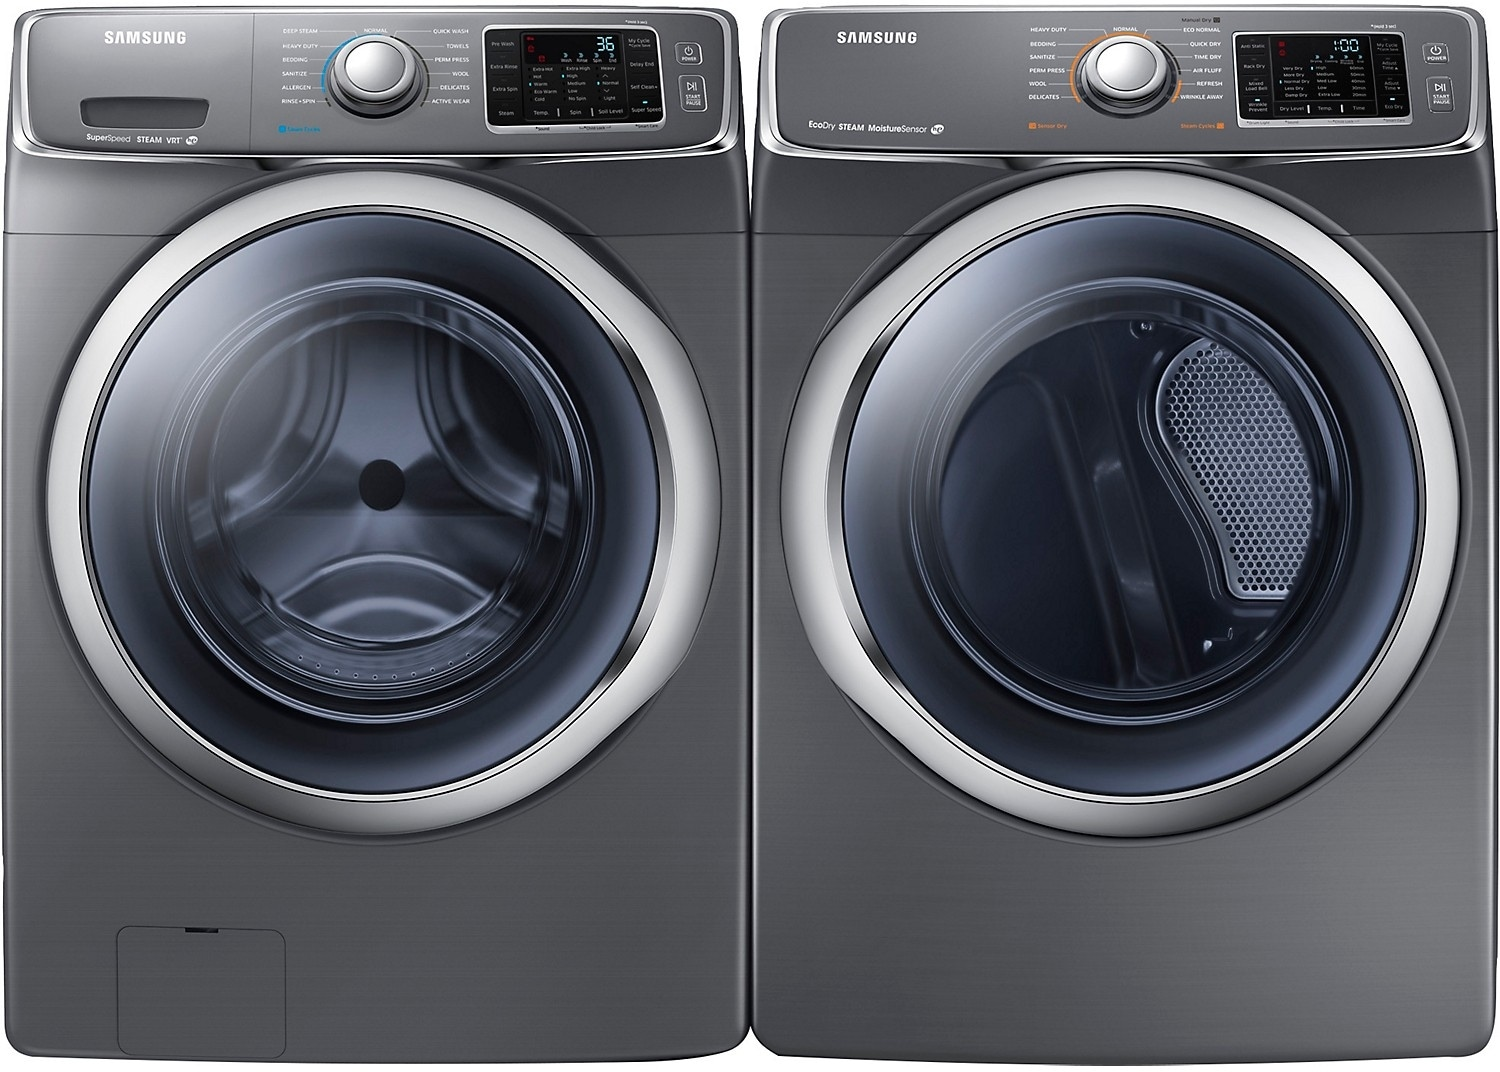 Samsung 4.8 Cu. Ft. Front-Load Washer and 7.5 Cu. Ft. Electric Dryer – Platinum